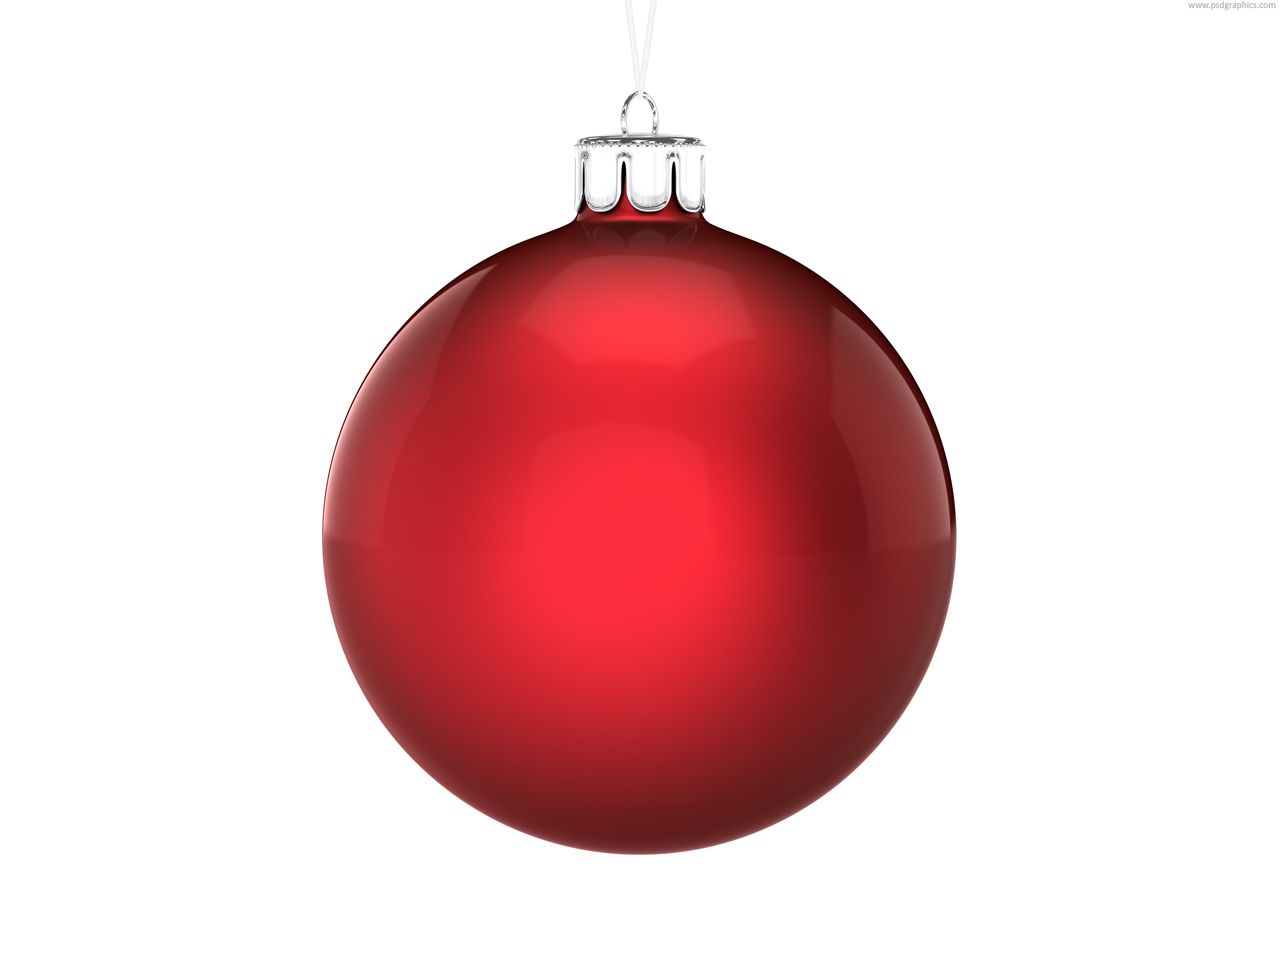 Medium size preview (1280x960px): Christmas ball